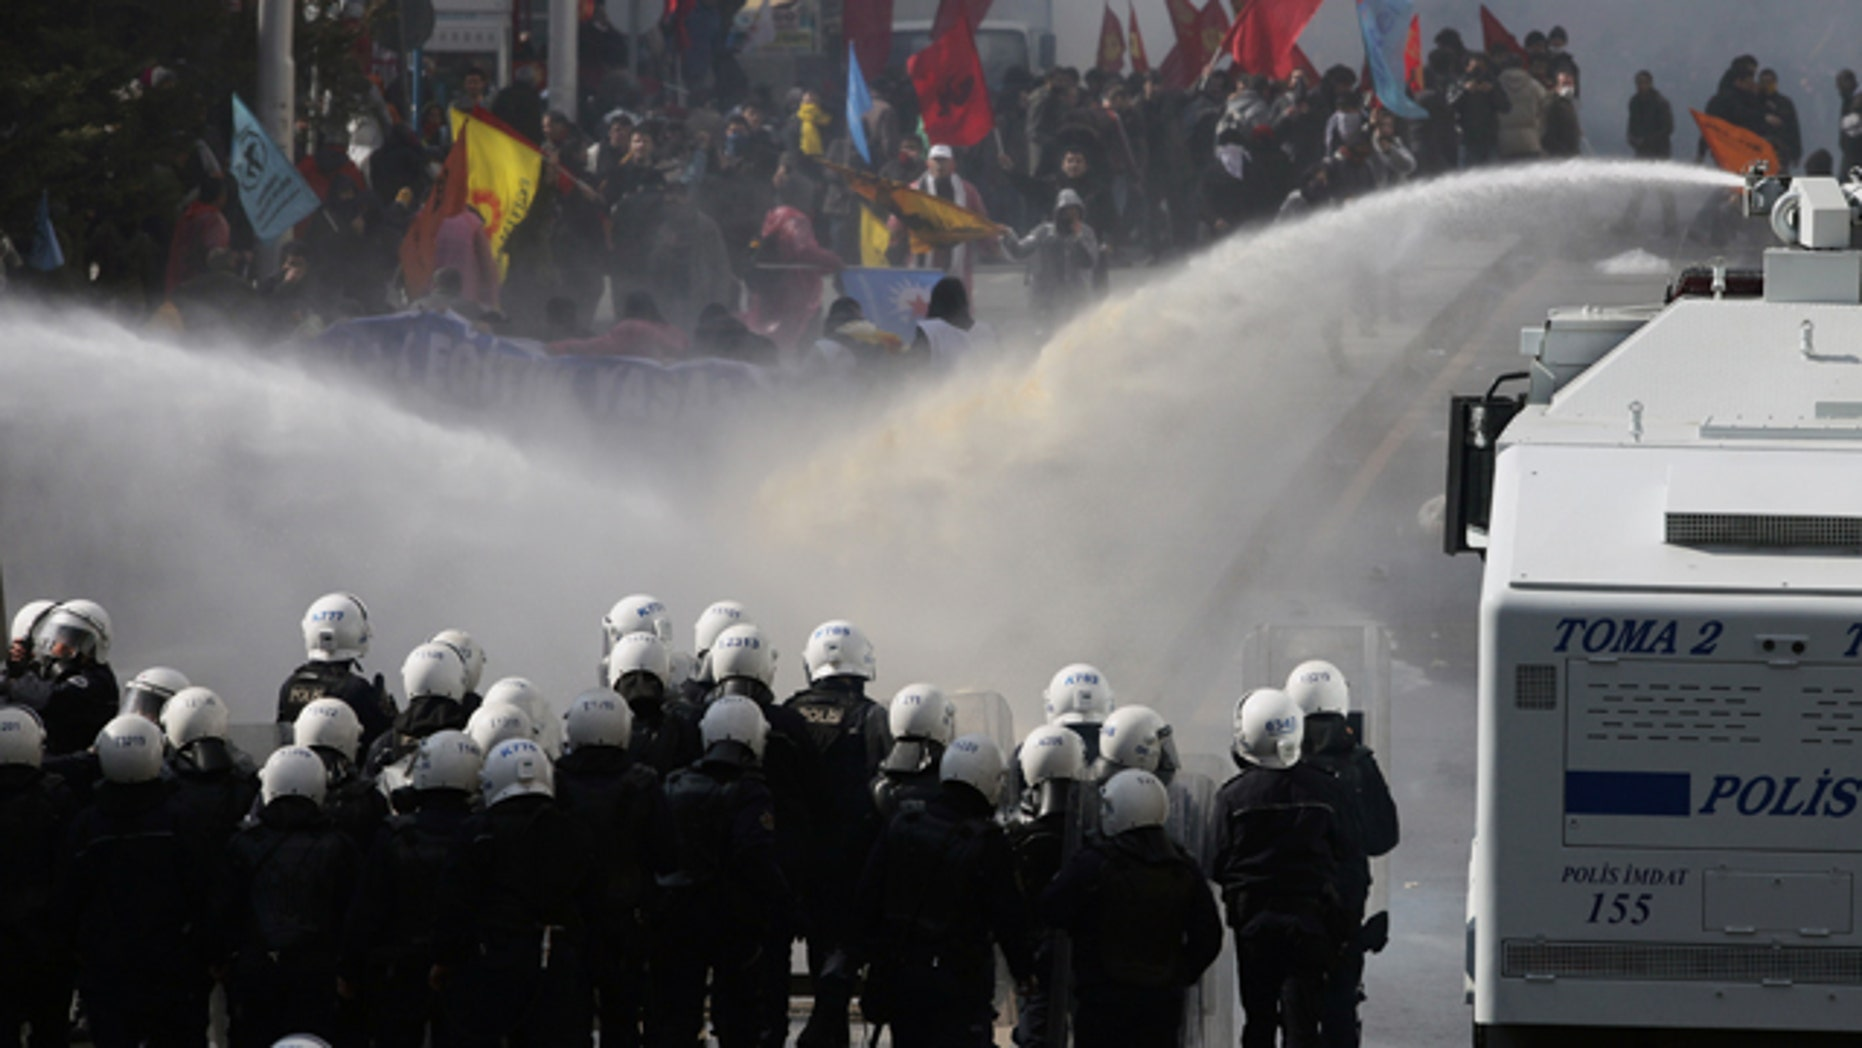 March 29, 2012: People run as Turkish police fire tear gas and water cannons to disperse thousands of people protesting an education reform bill that opponents say will boost the influence of Islamic schools, in Ankara, Turkey.